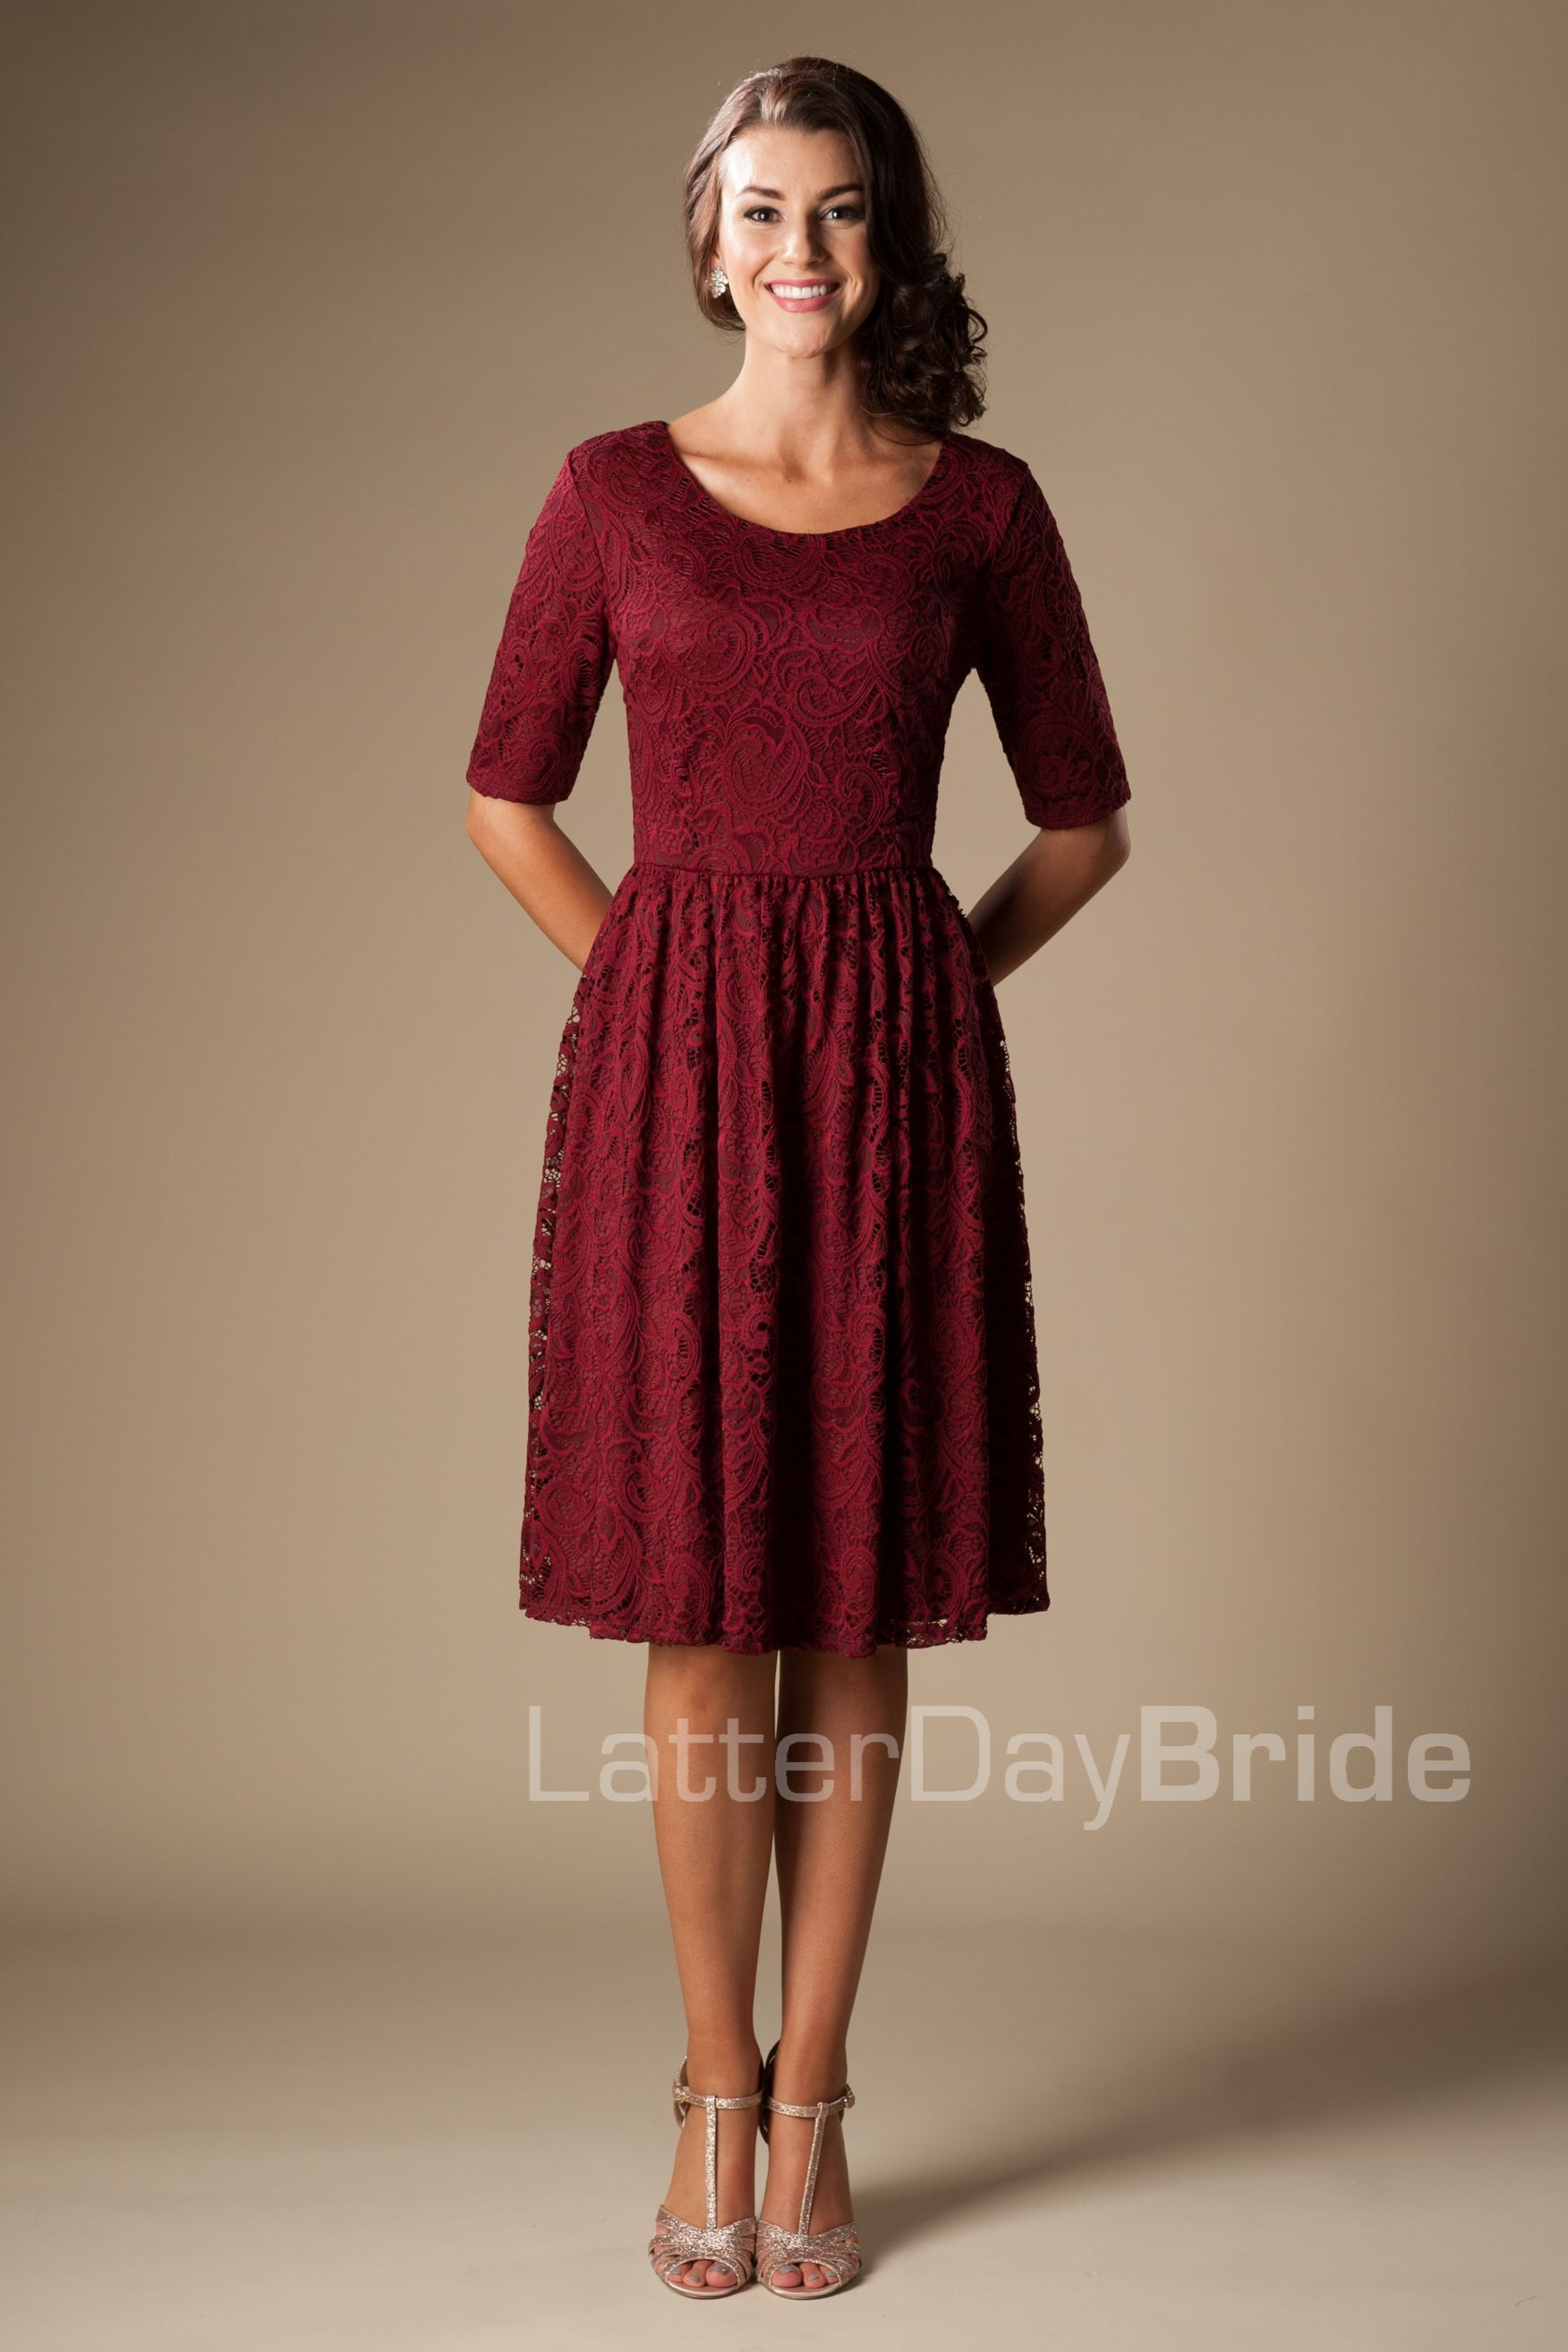 Modest bridesmaid dress mw22880 burgundy frontg 55 style modest bridesmaid dresses 404 the requested product does not exist ombrellifo Image collections